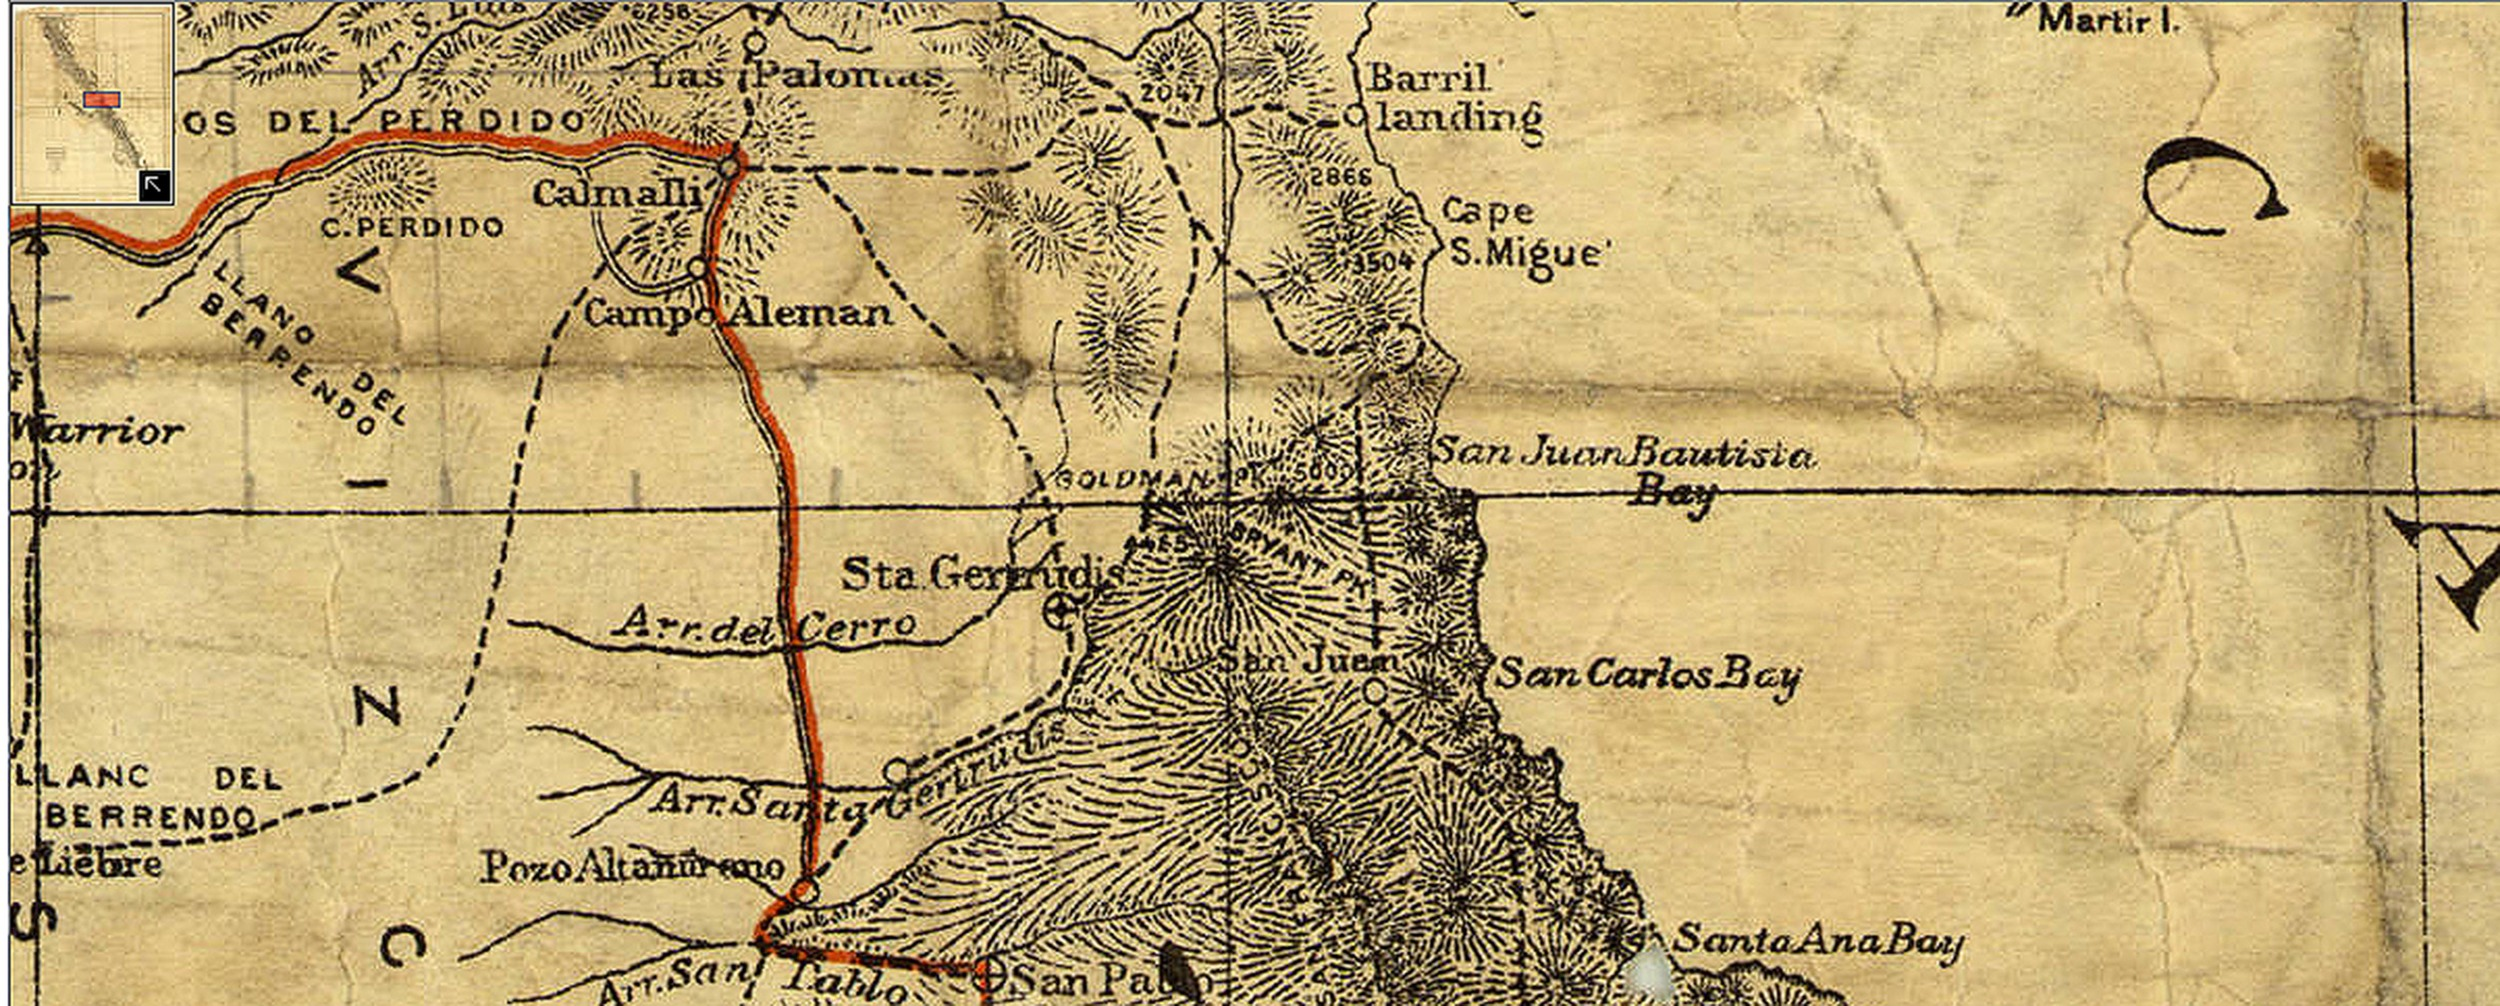 1919 map of Baja. Goldman Peak at center, northeast of Santa Gertrudis.